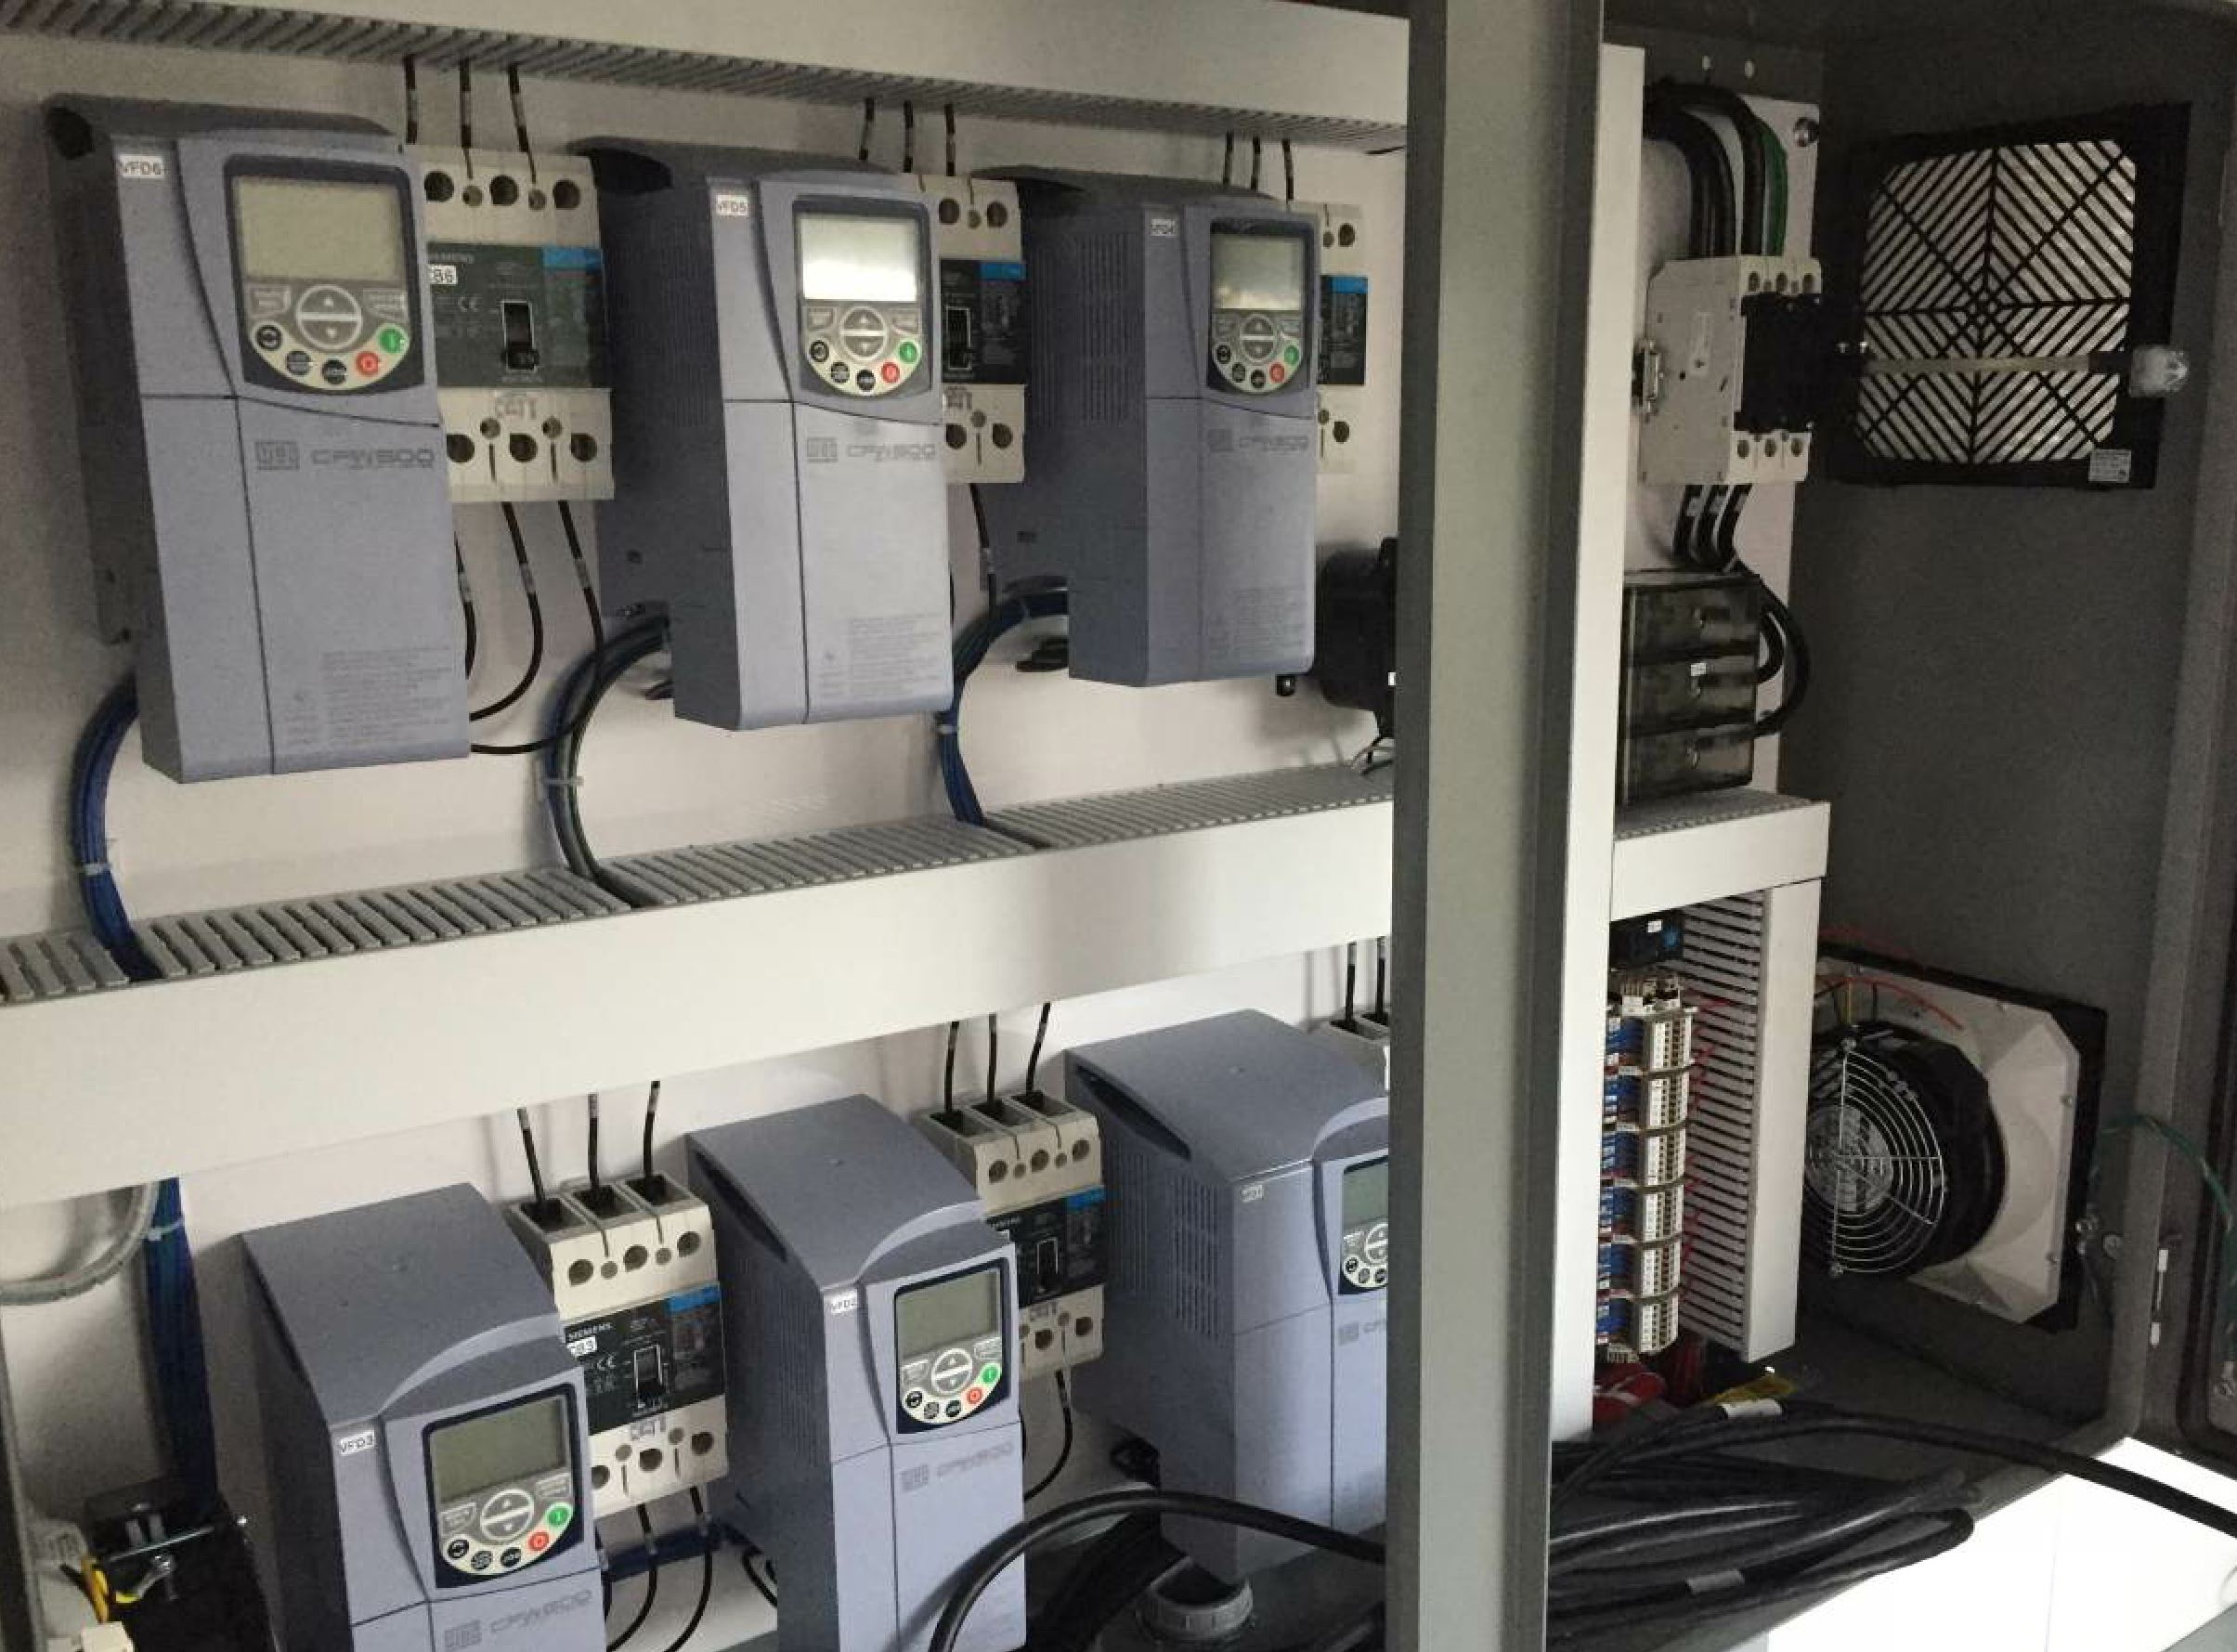 Variable frequency drives and their related wiring equipment must be installed in a dust-free environment that can be kept cool. Photo courtesy Ahern Industries.